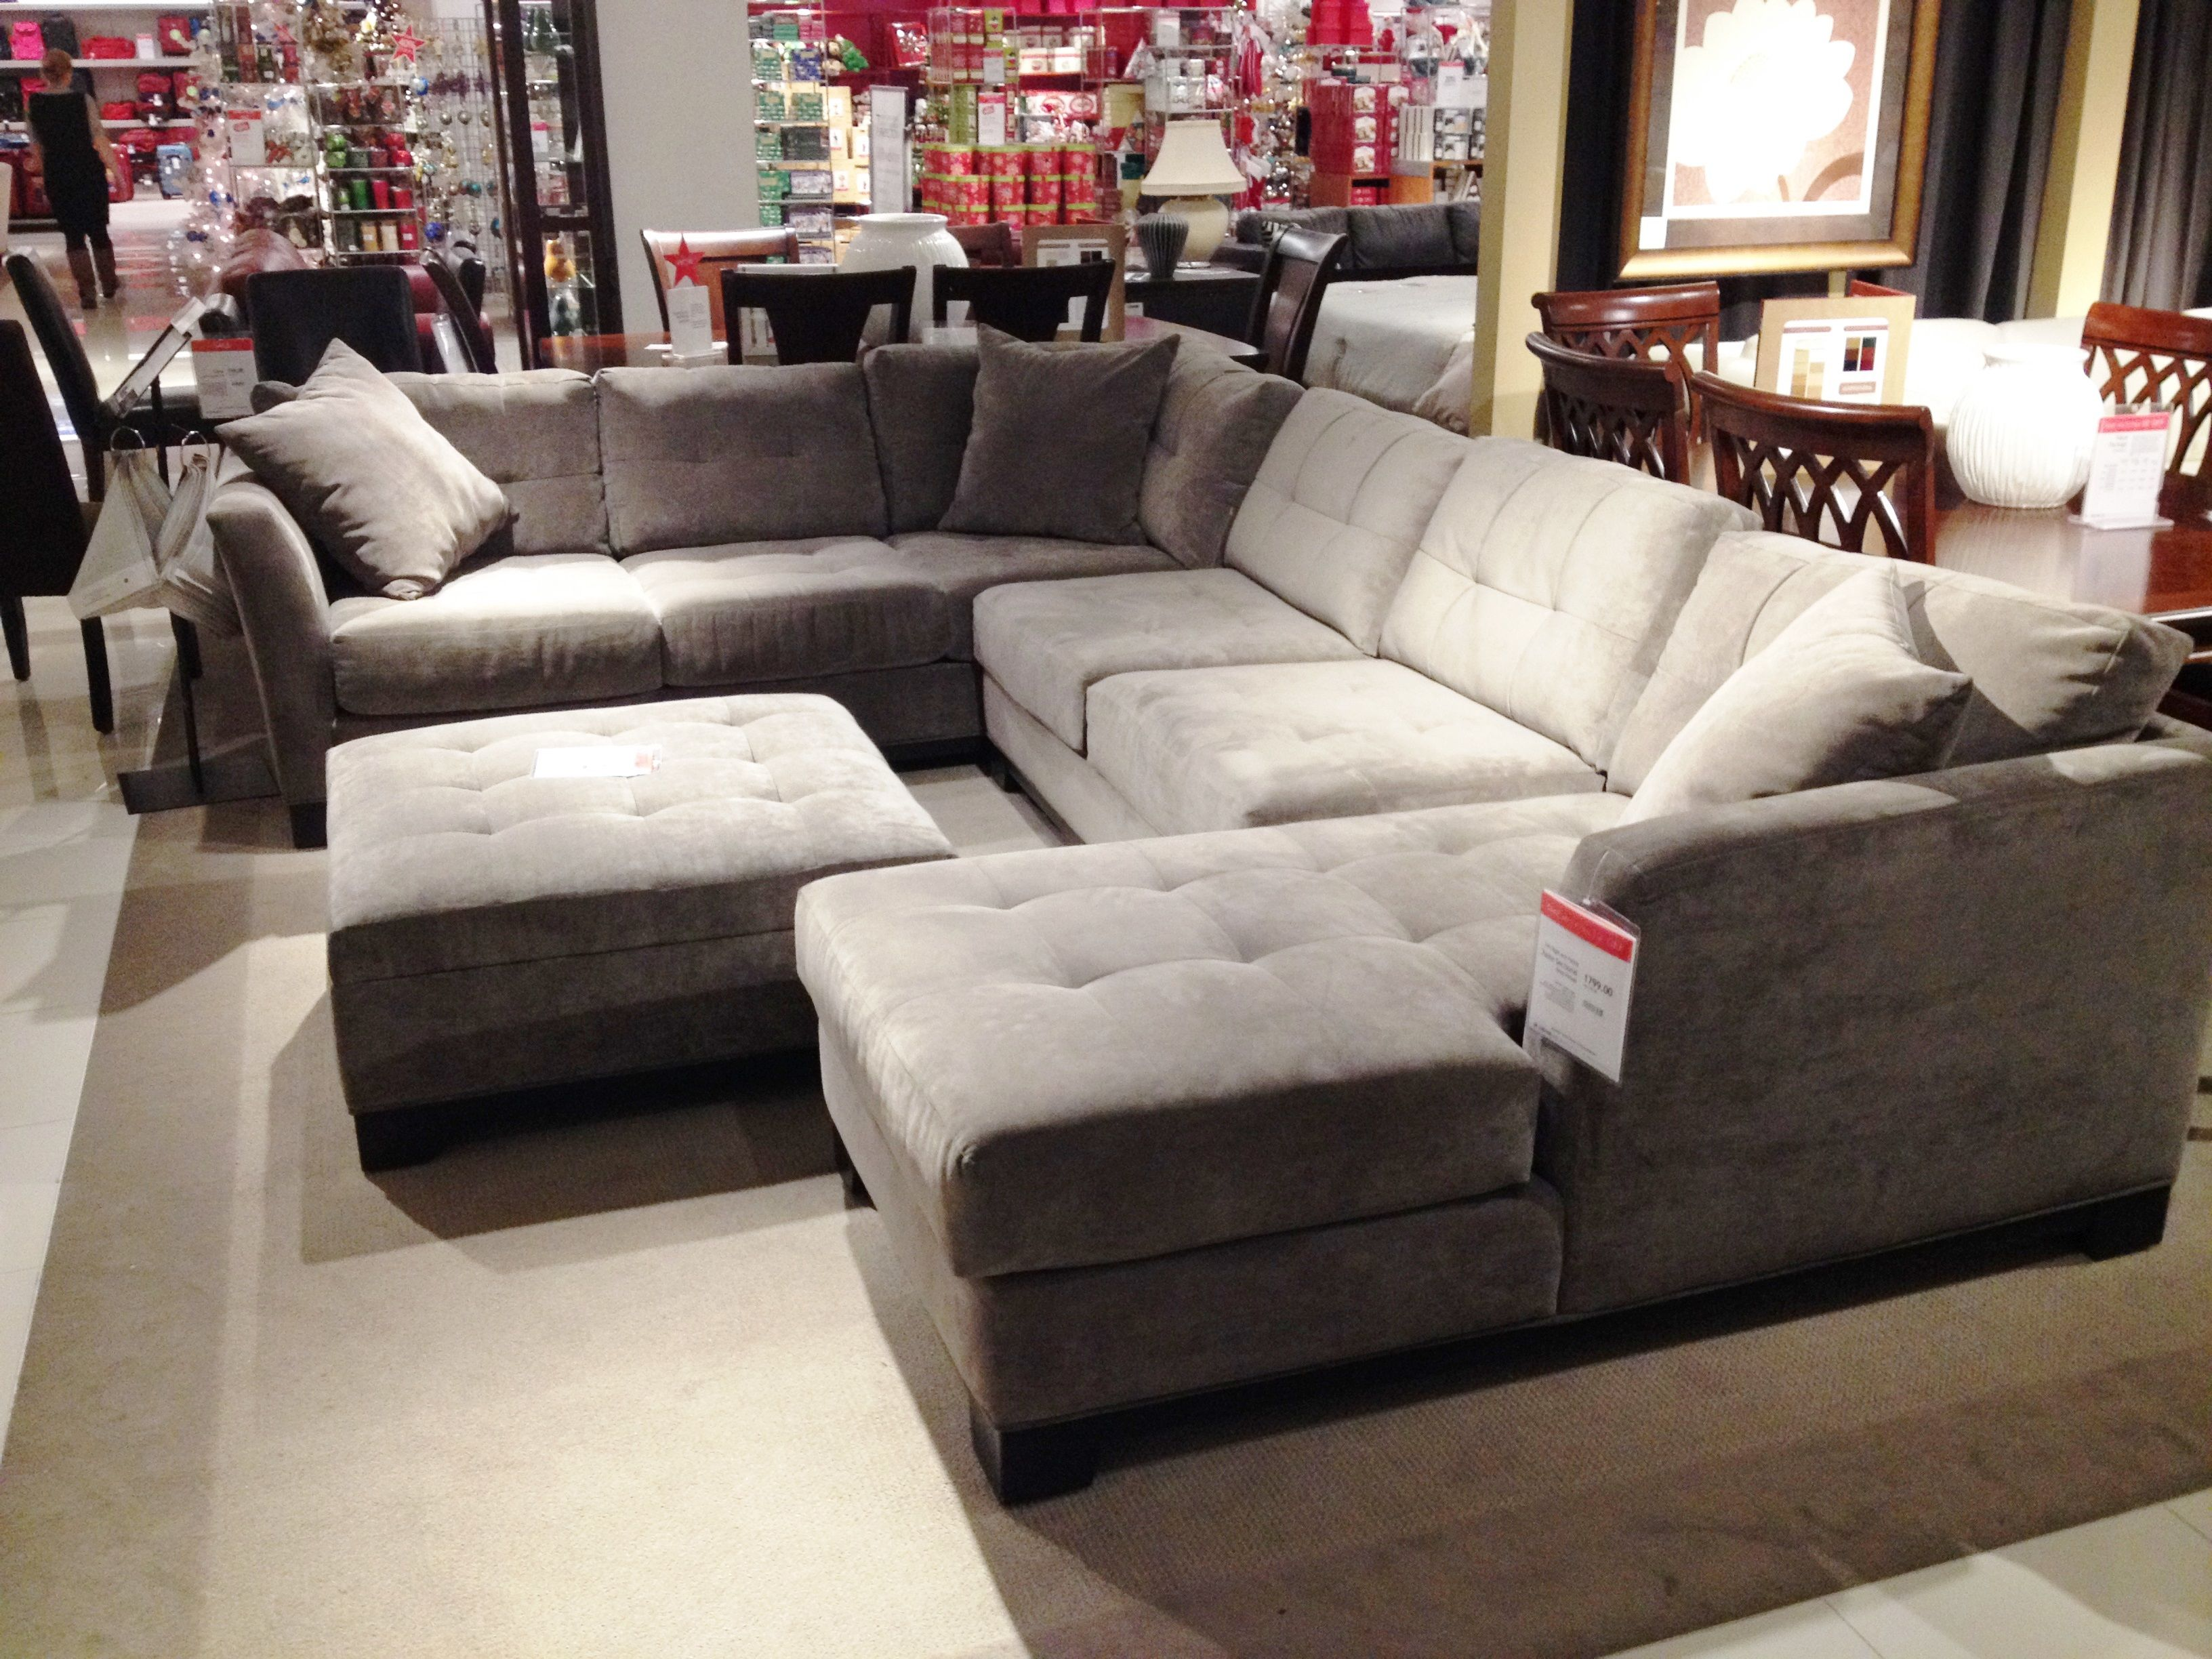 cool sectional sofas leather design-Contemporary Sectional sofas Leather Gallery